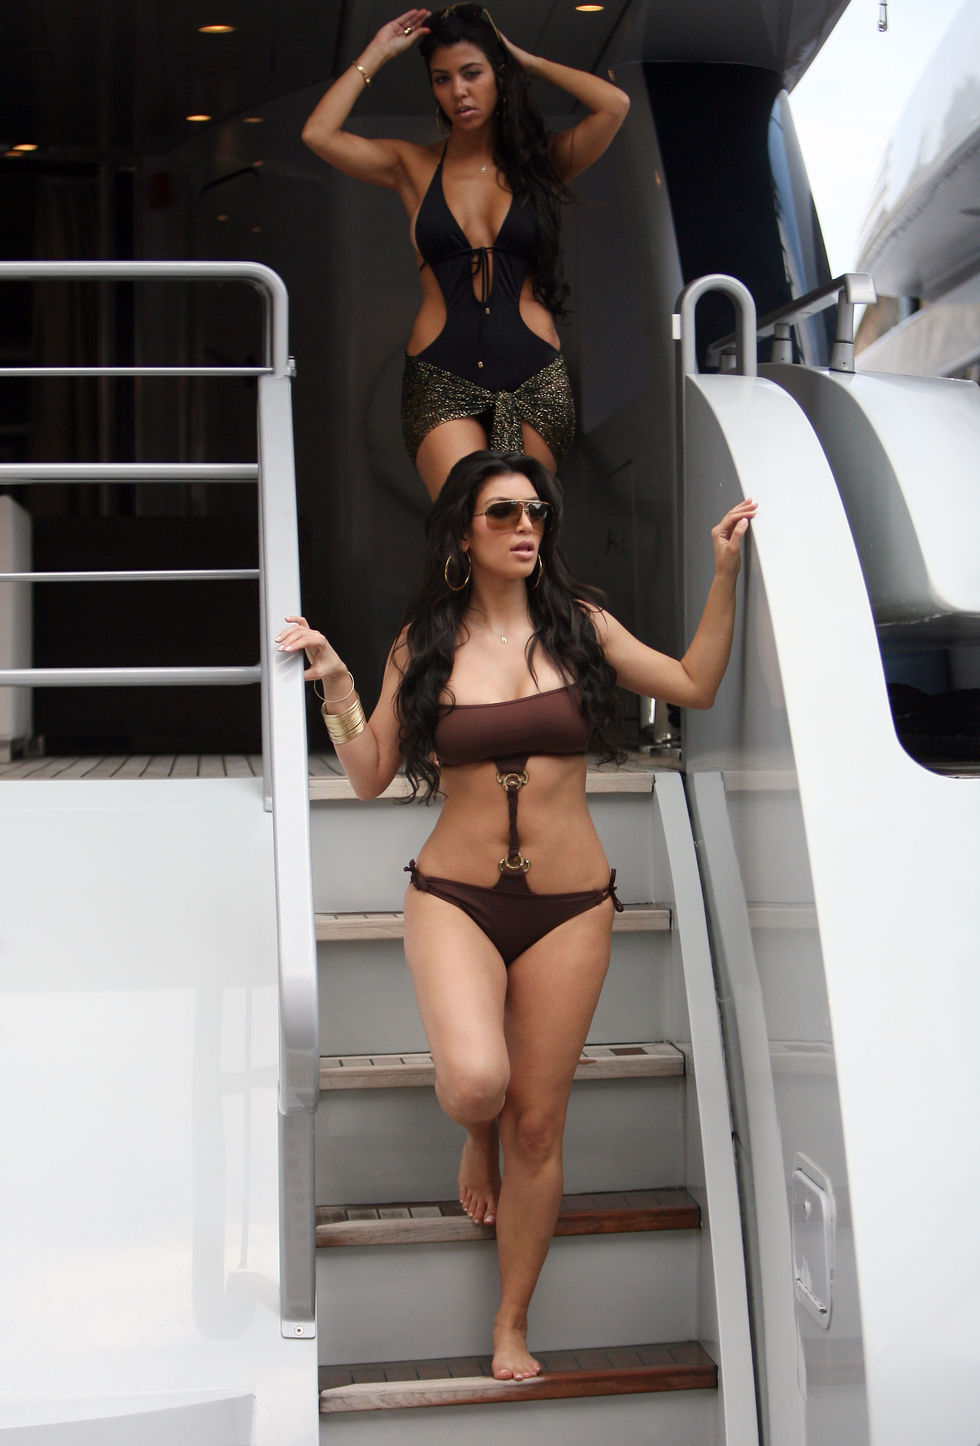 kim and kourtney kardashian bikini candids in monaco 29 Award winning erotic romance author Marly Chance lives in a small Tennessee